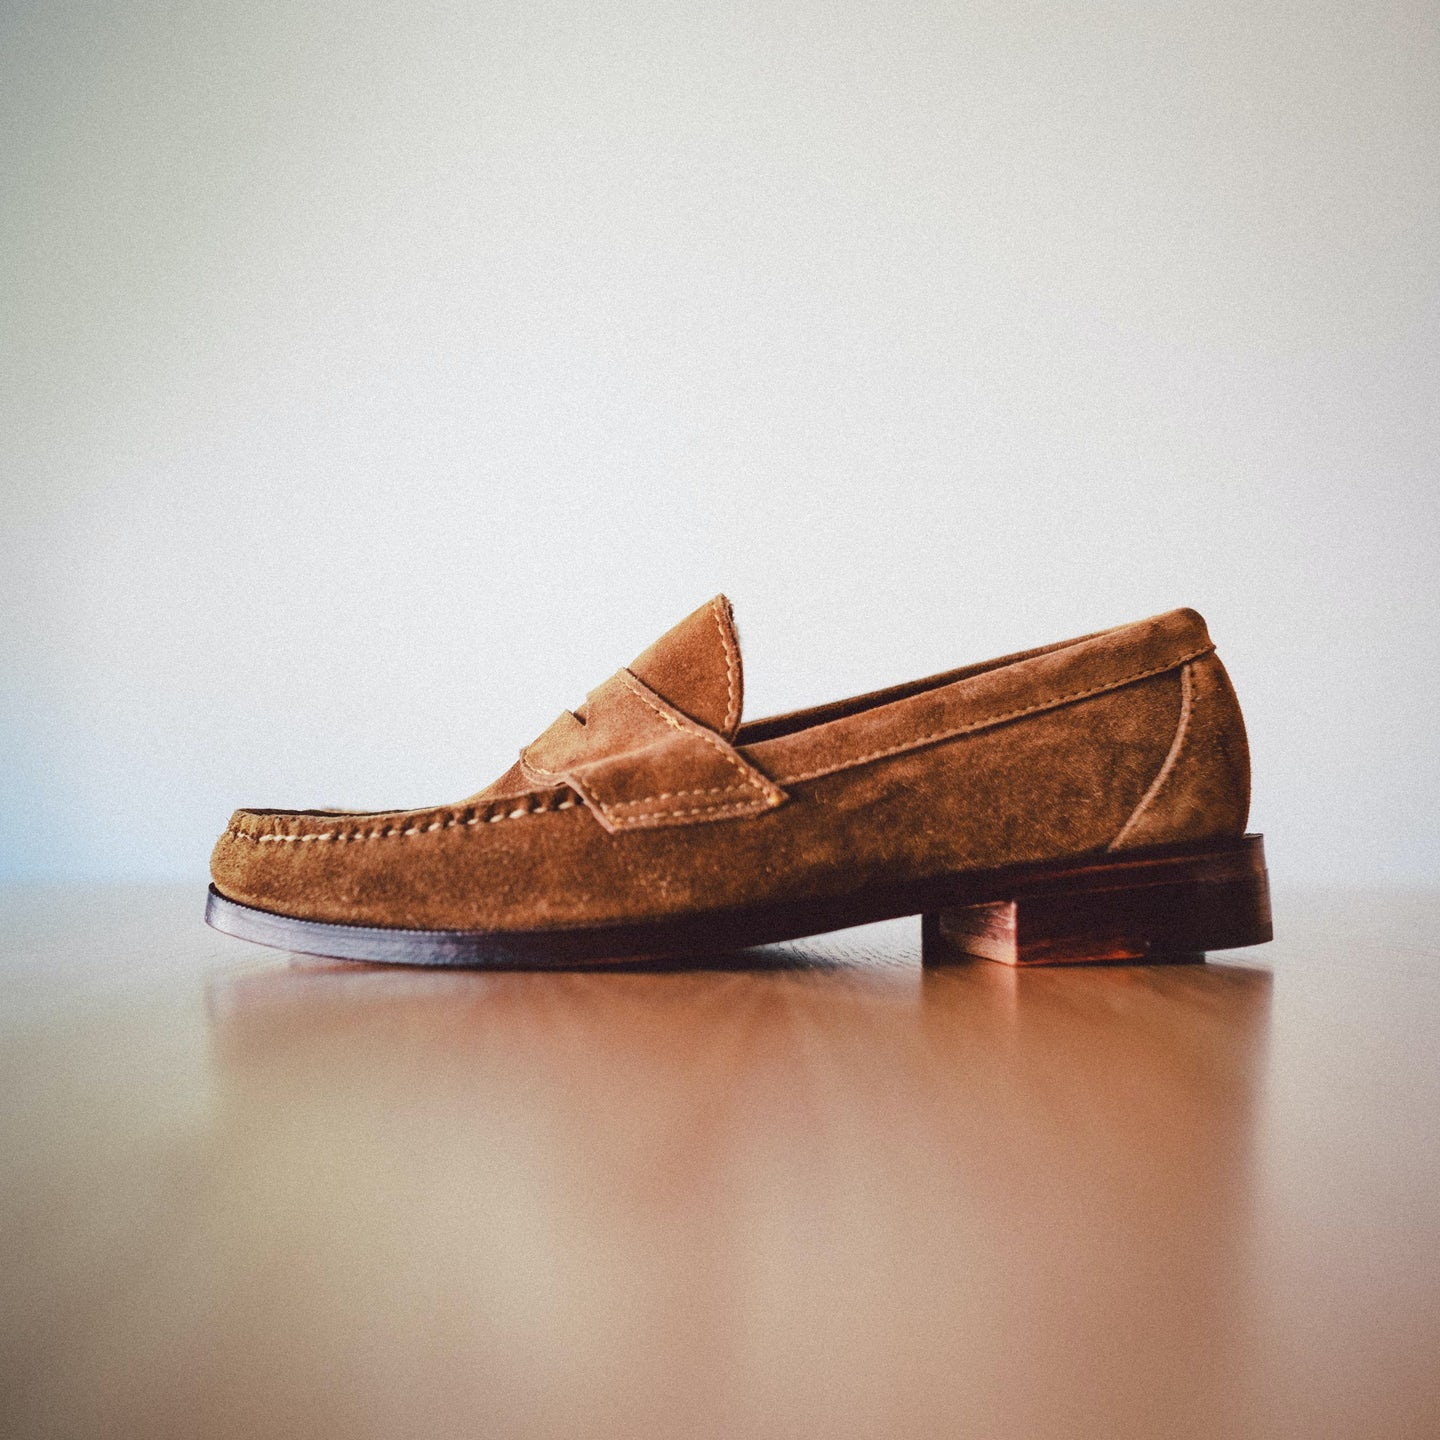 Snuff Janus Suede Penny Loafer - Feature Image